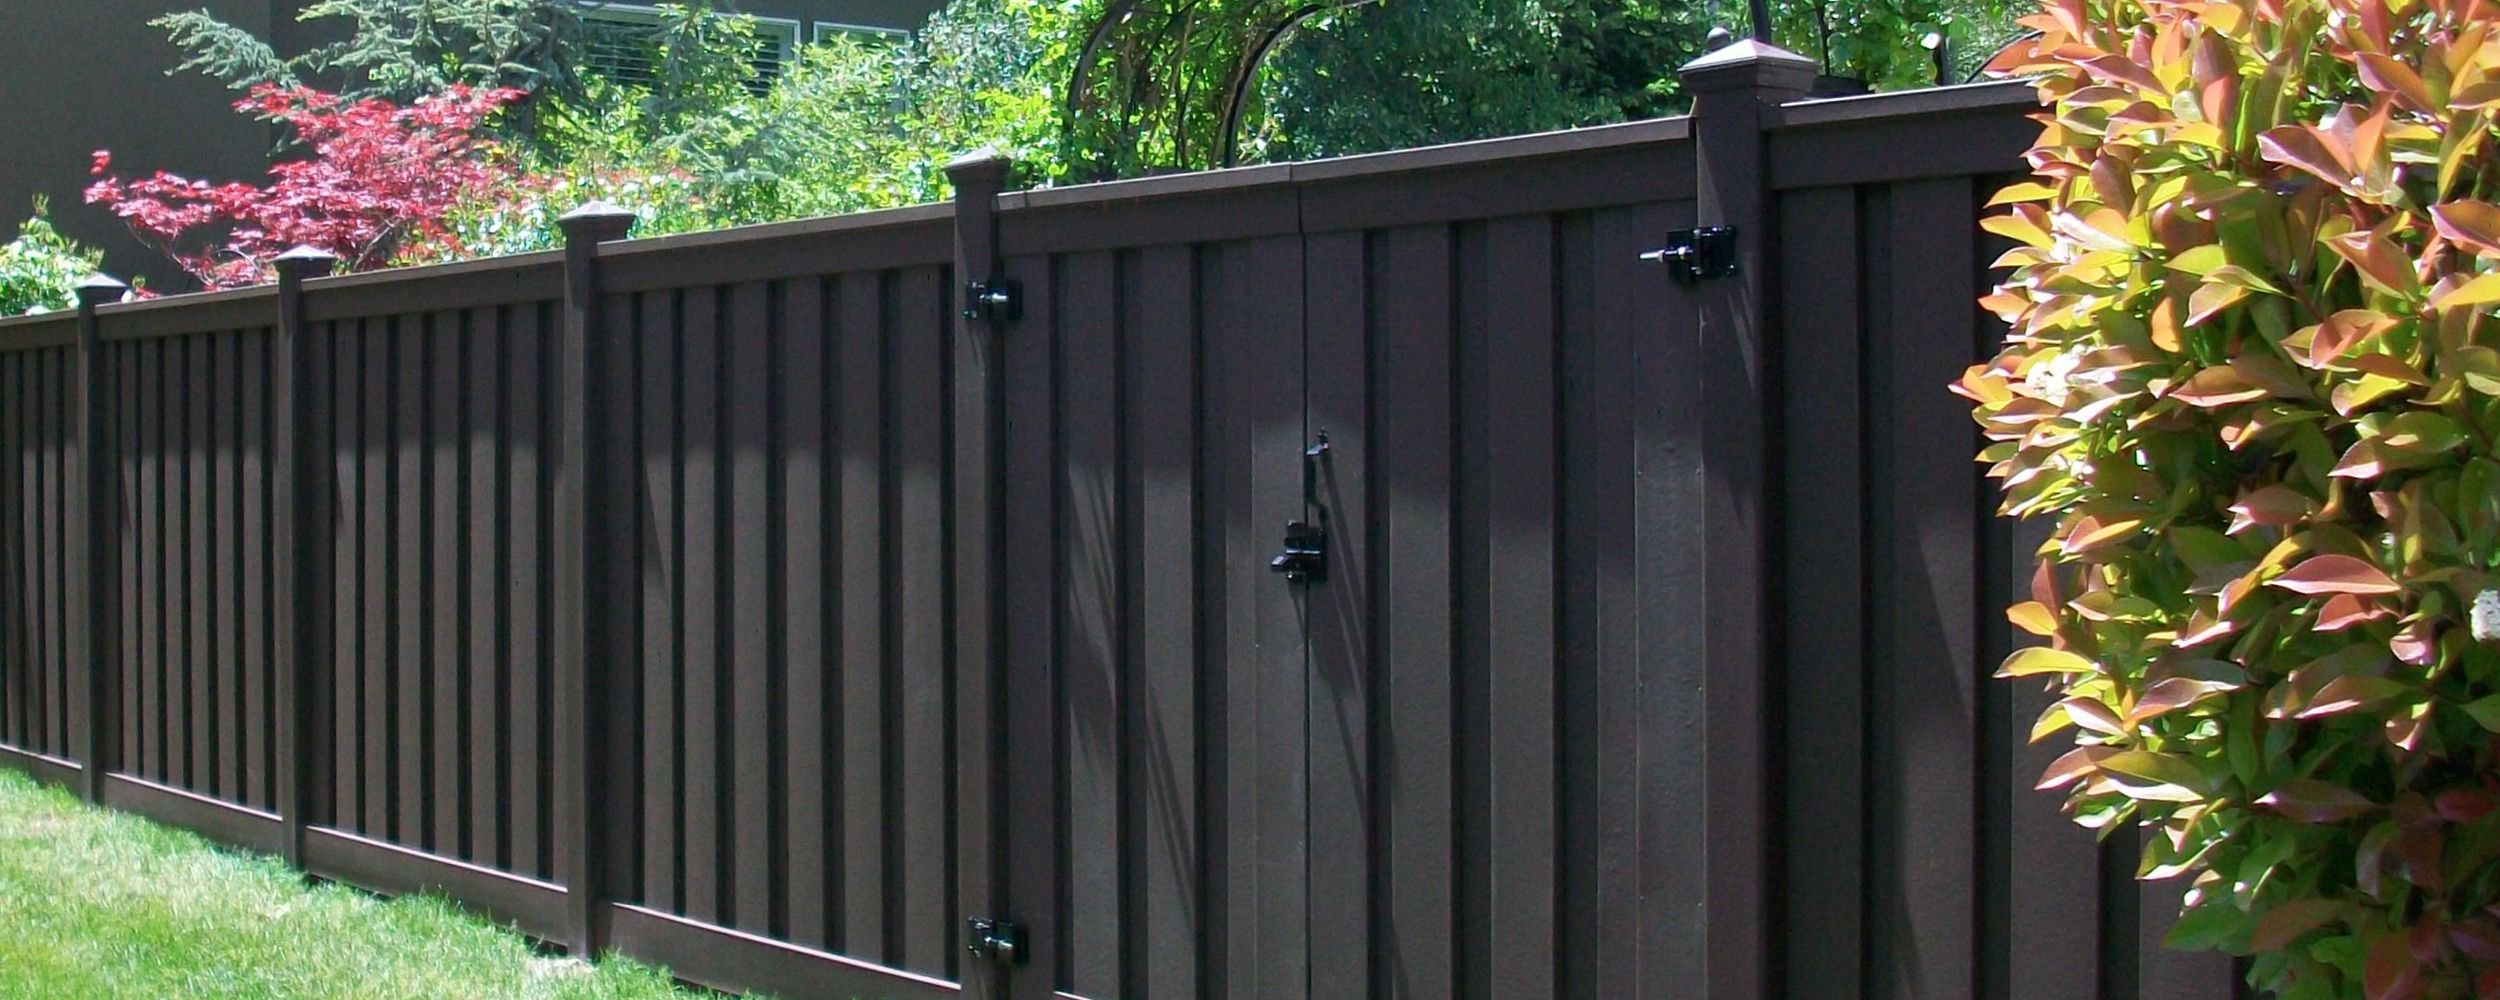 Best Fence Company Dallas Tx Exterior Ideas Home Decor